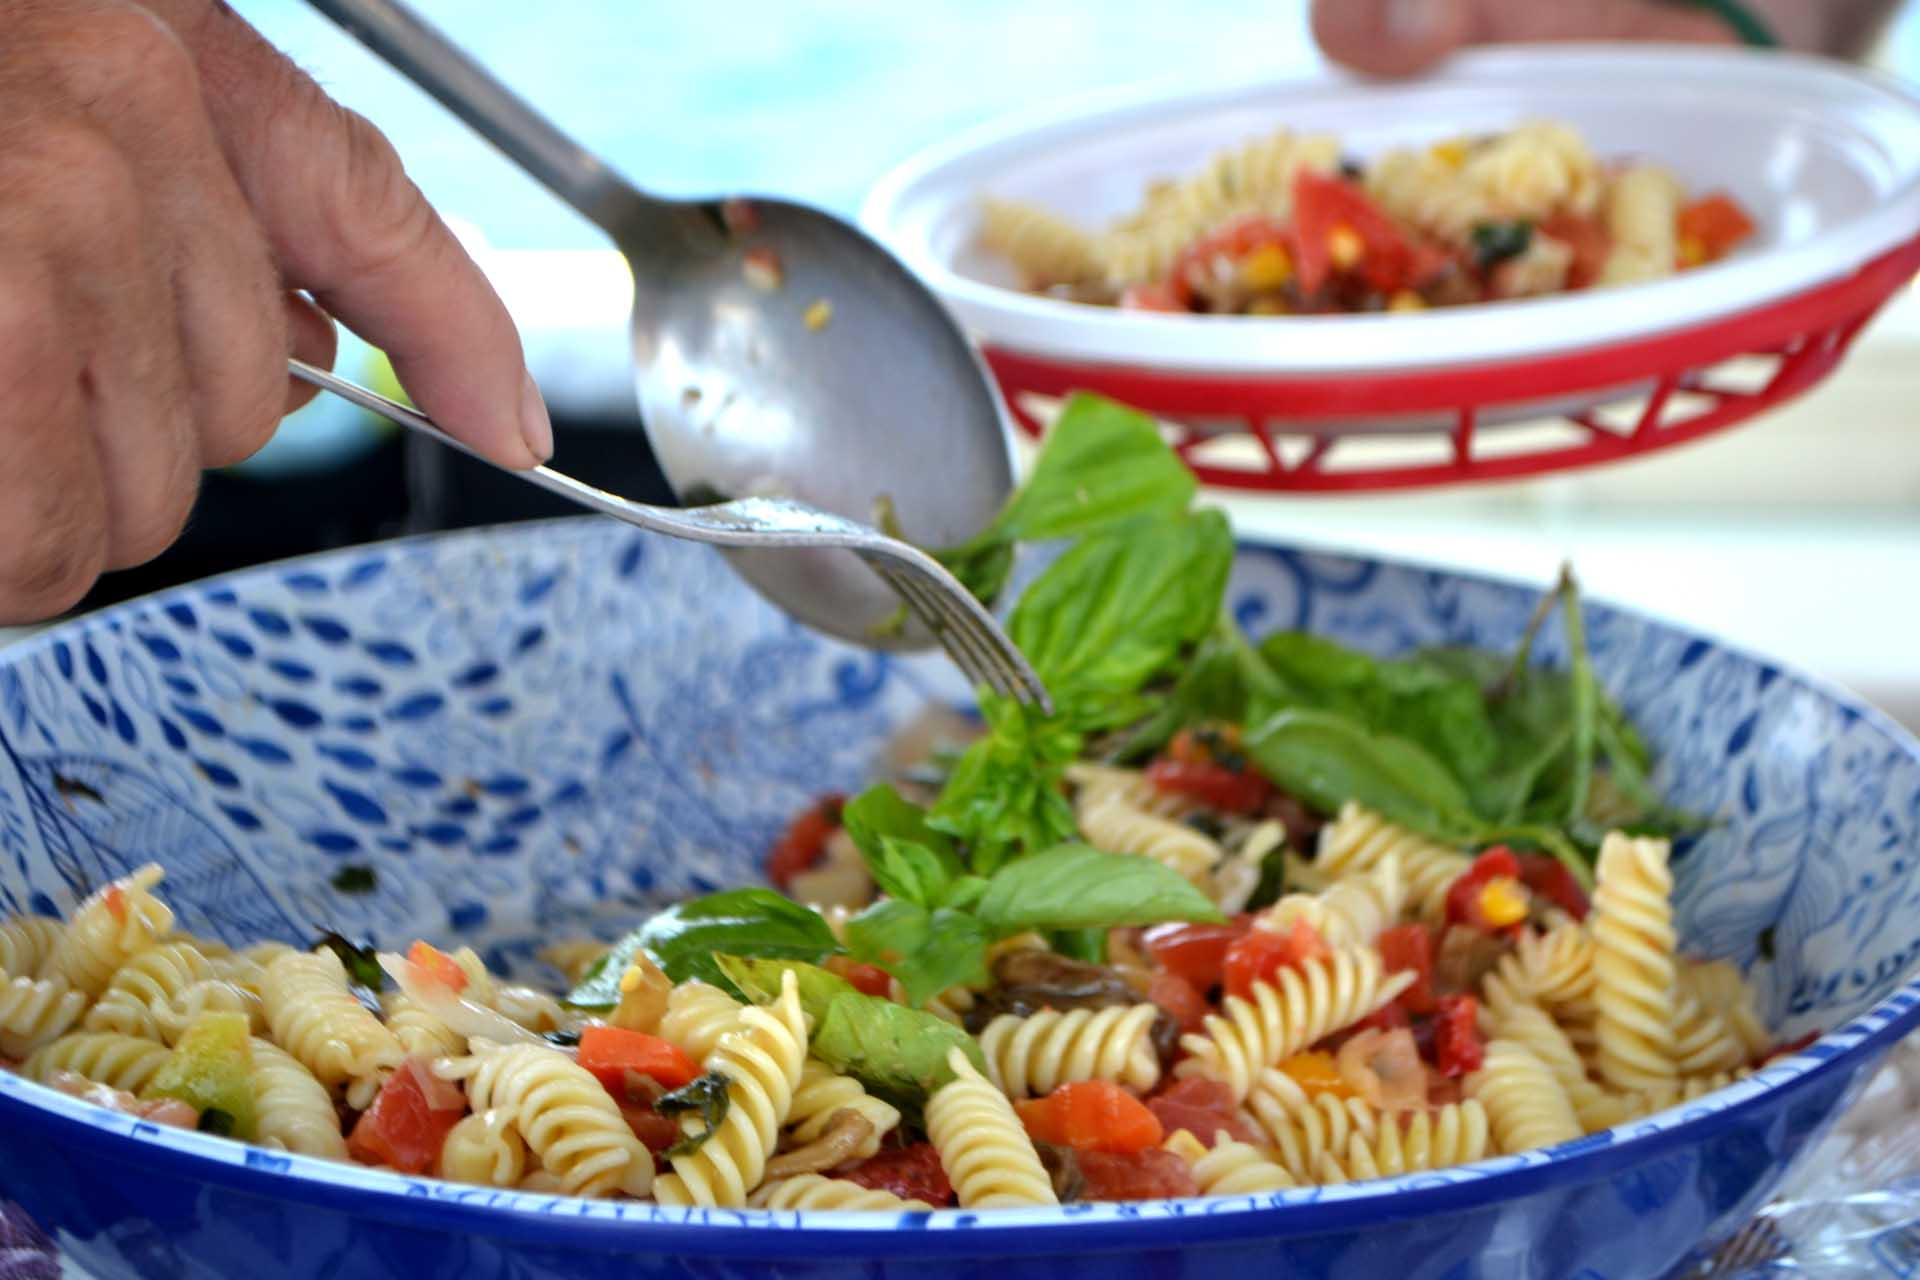 Fresh pasta salad meal on boat